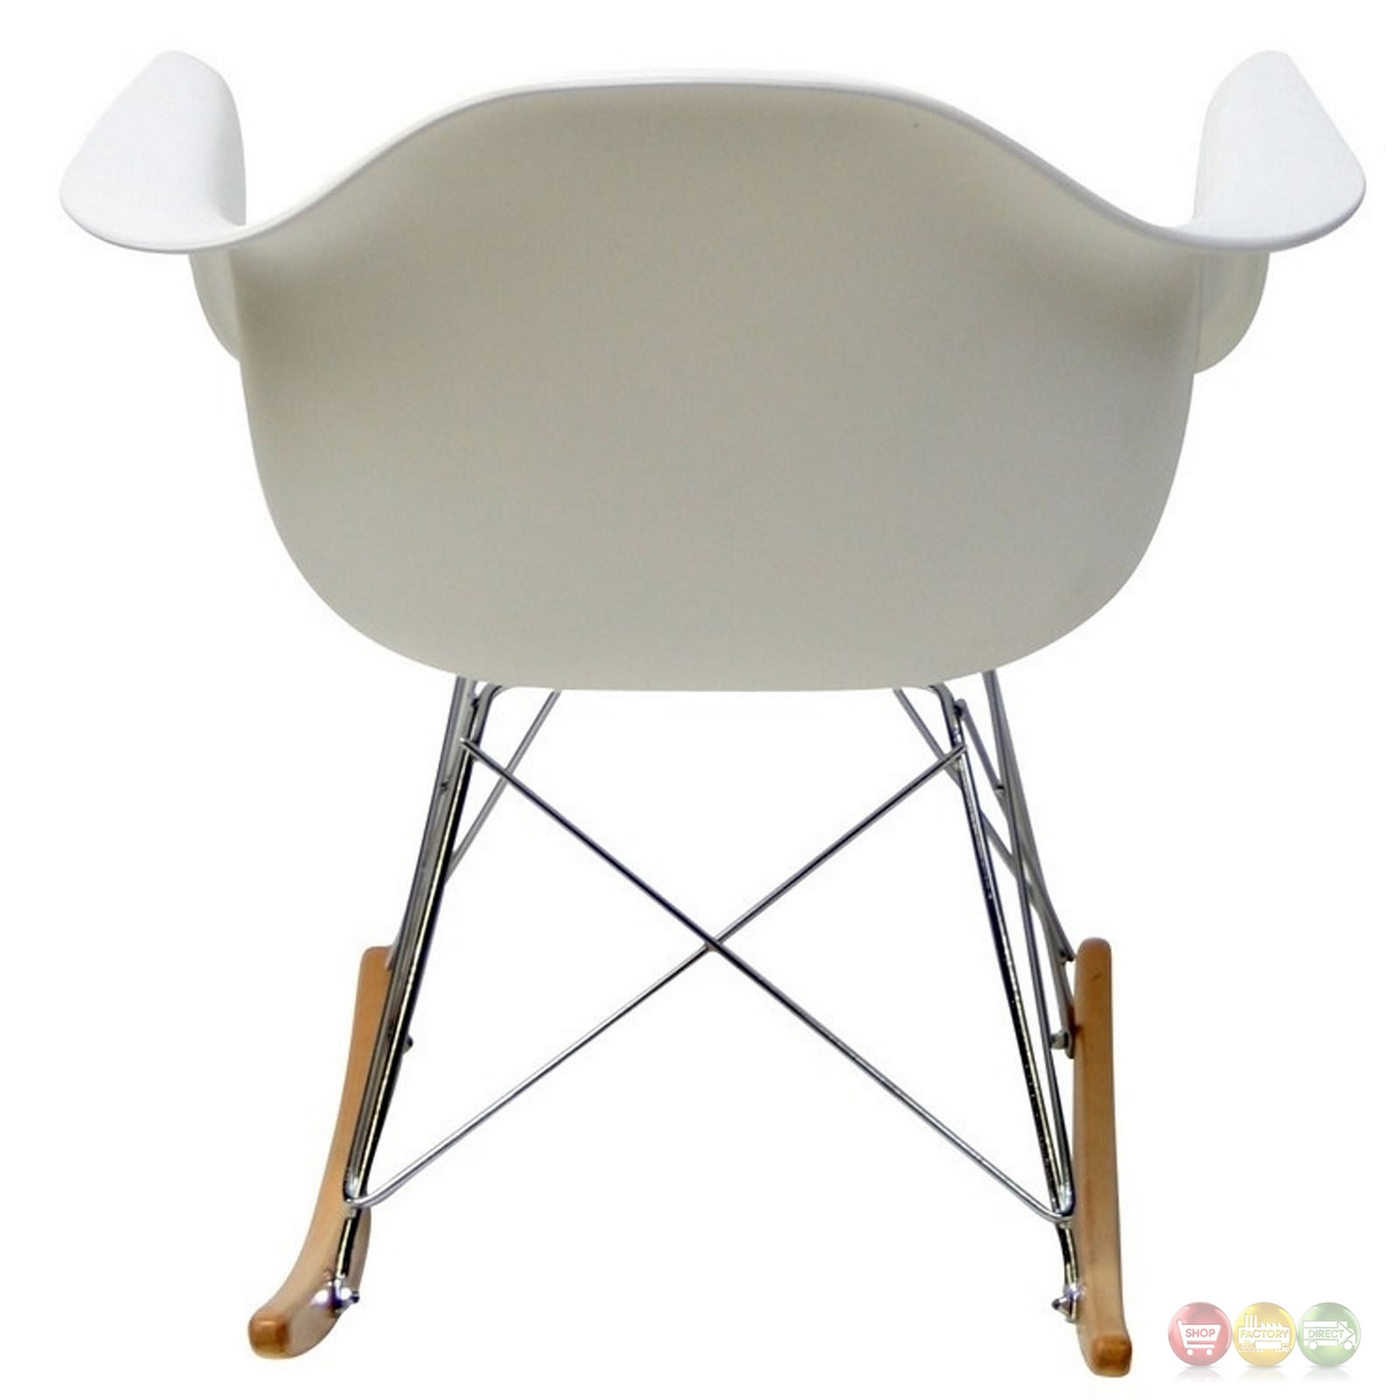 white plastic lounge chairs high chair kmart rocker molded rocking with chrome